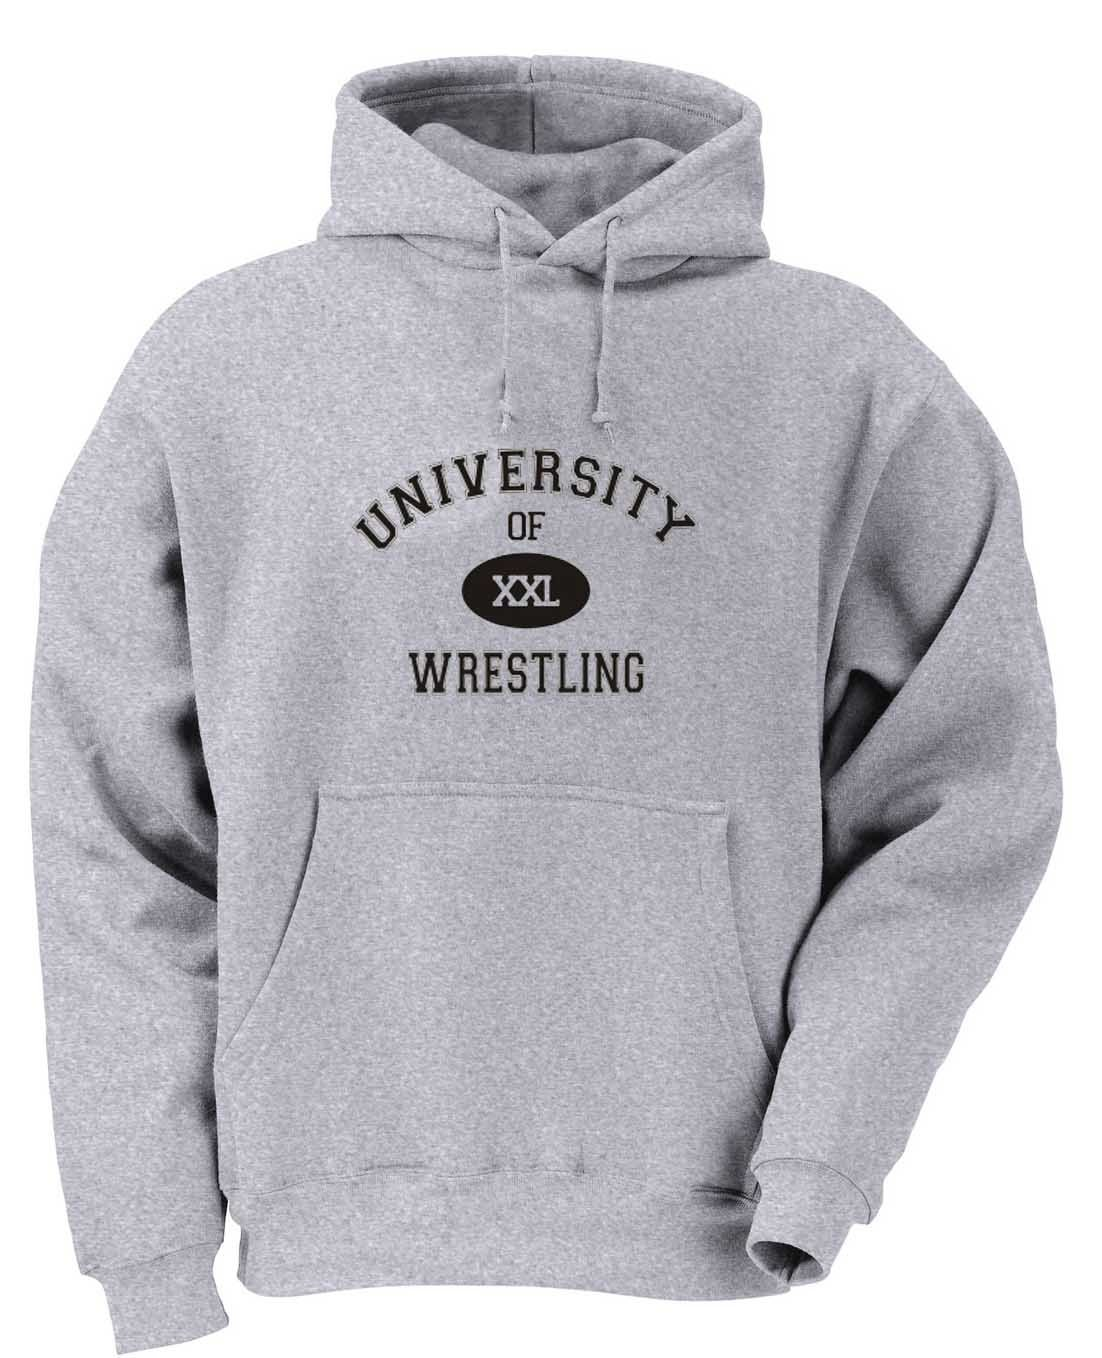 UNIVERSITY OF XXL WRESTLING Youth Hooded Sweatshirt (for Kids) ASH GREY LARGE